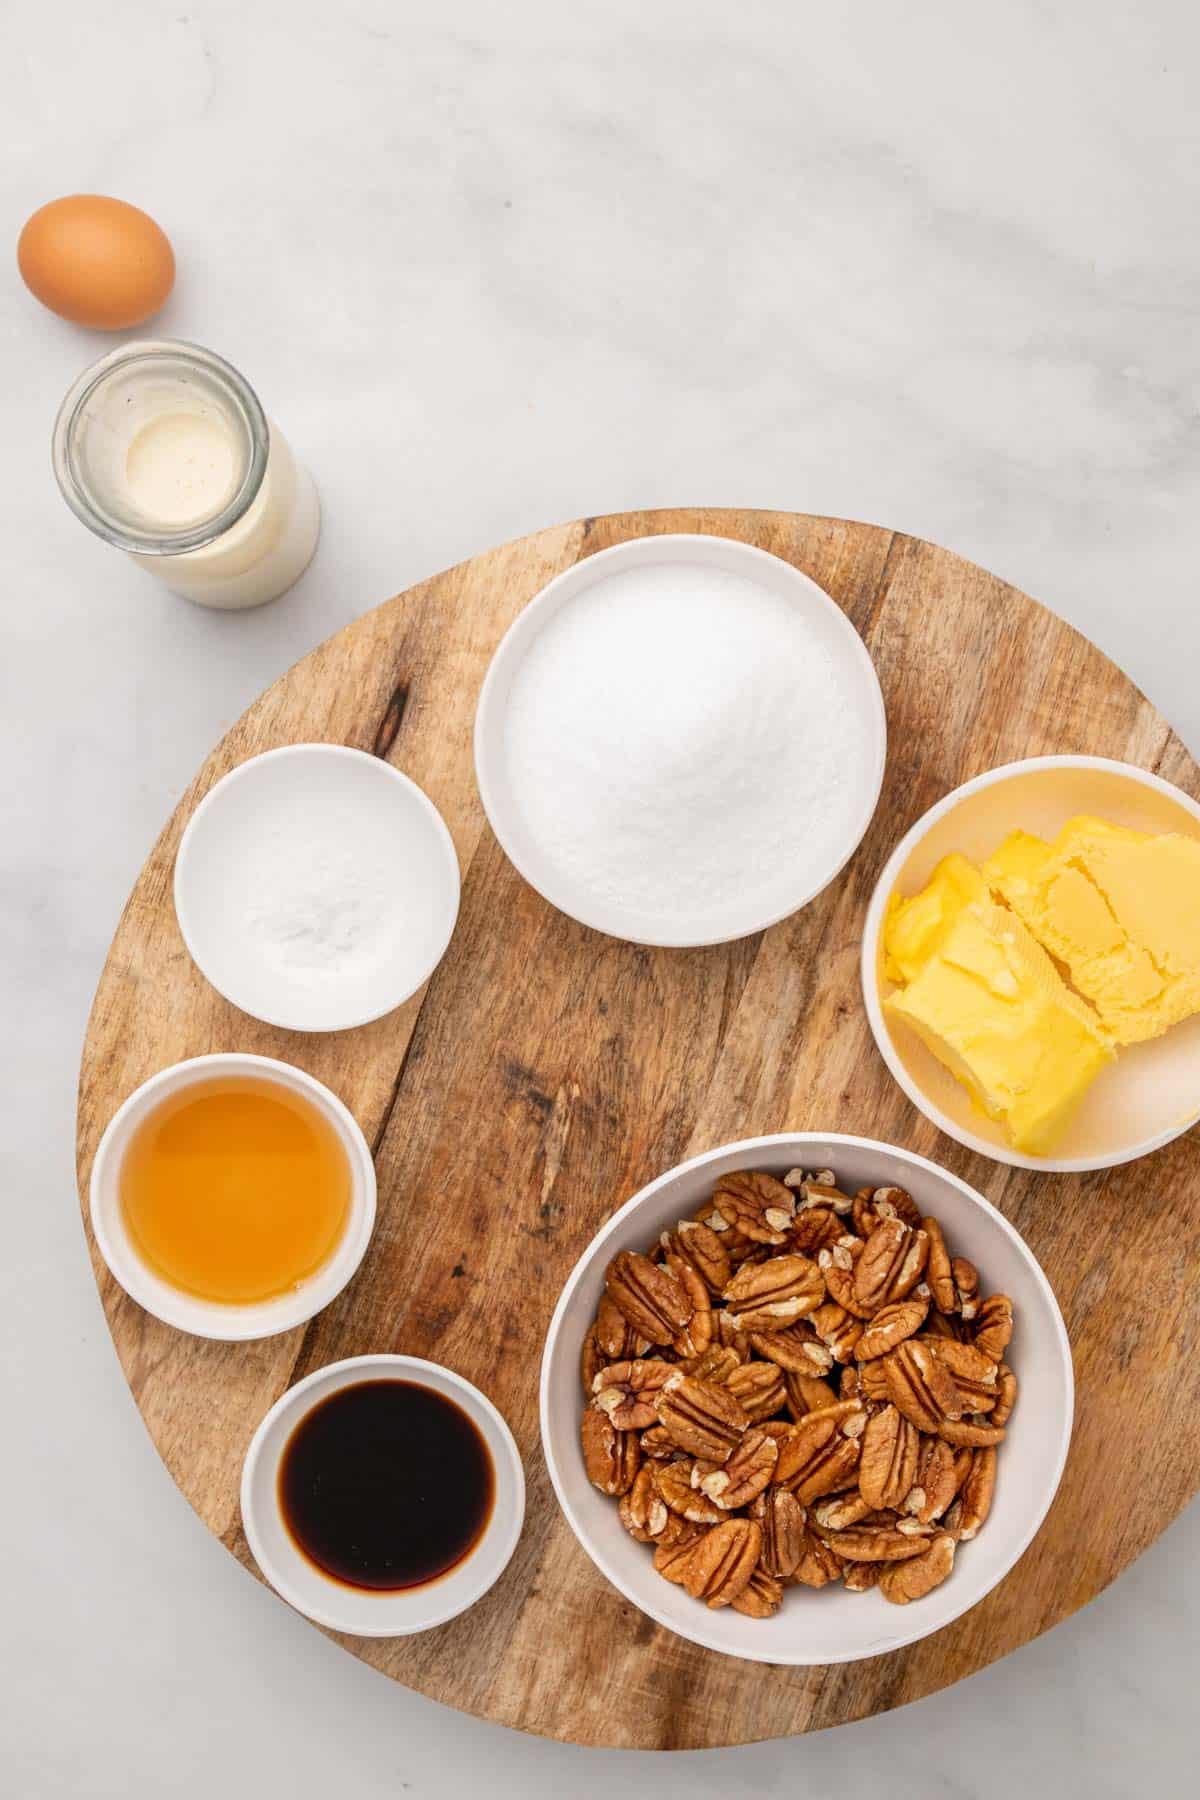 Ingredients for pie filling in separate ramekins, as seen from above